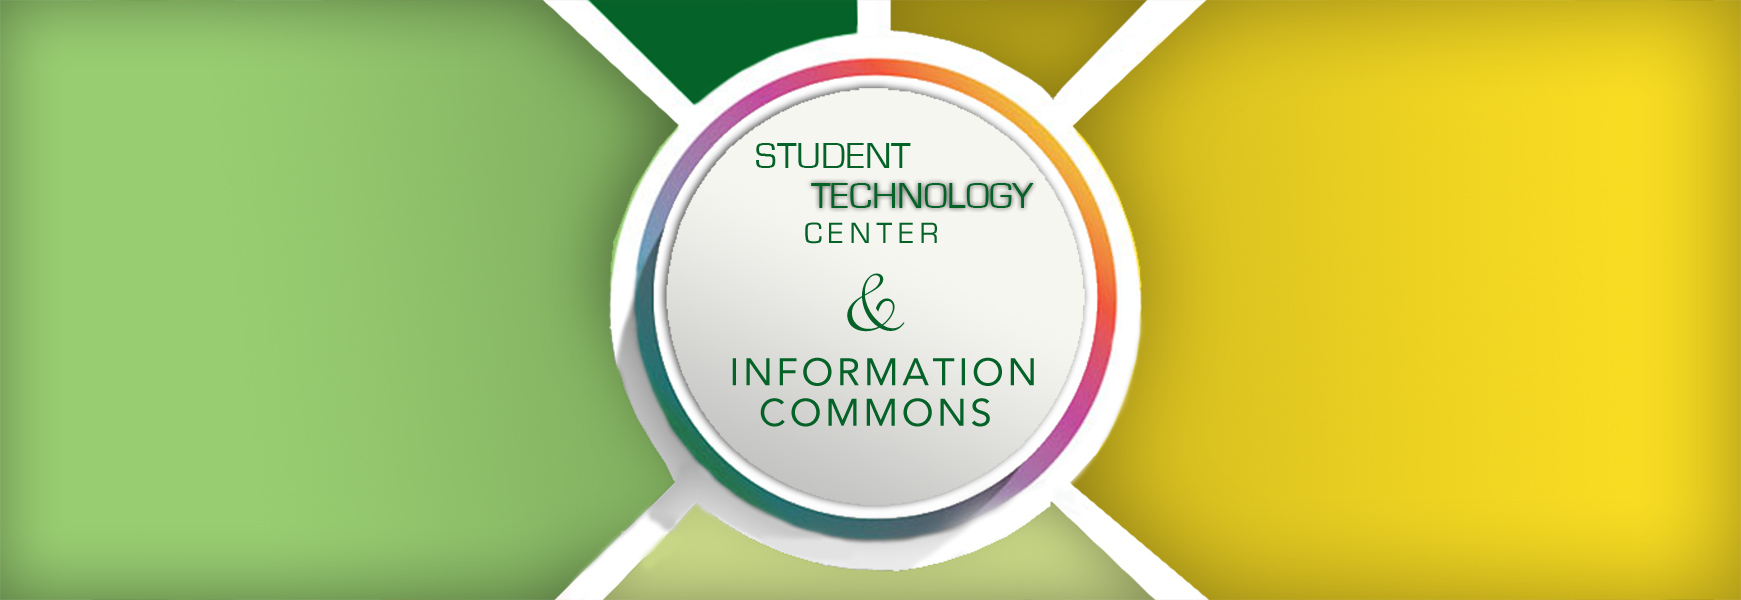 Information Commons Image